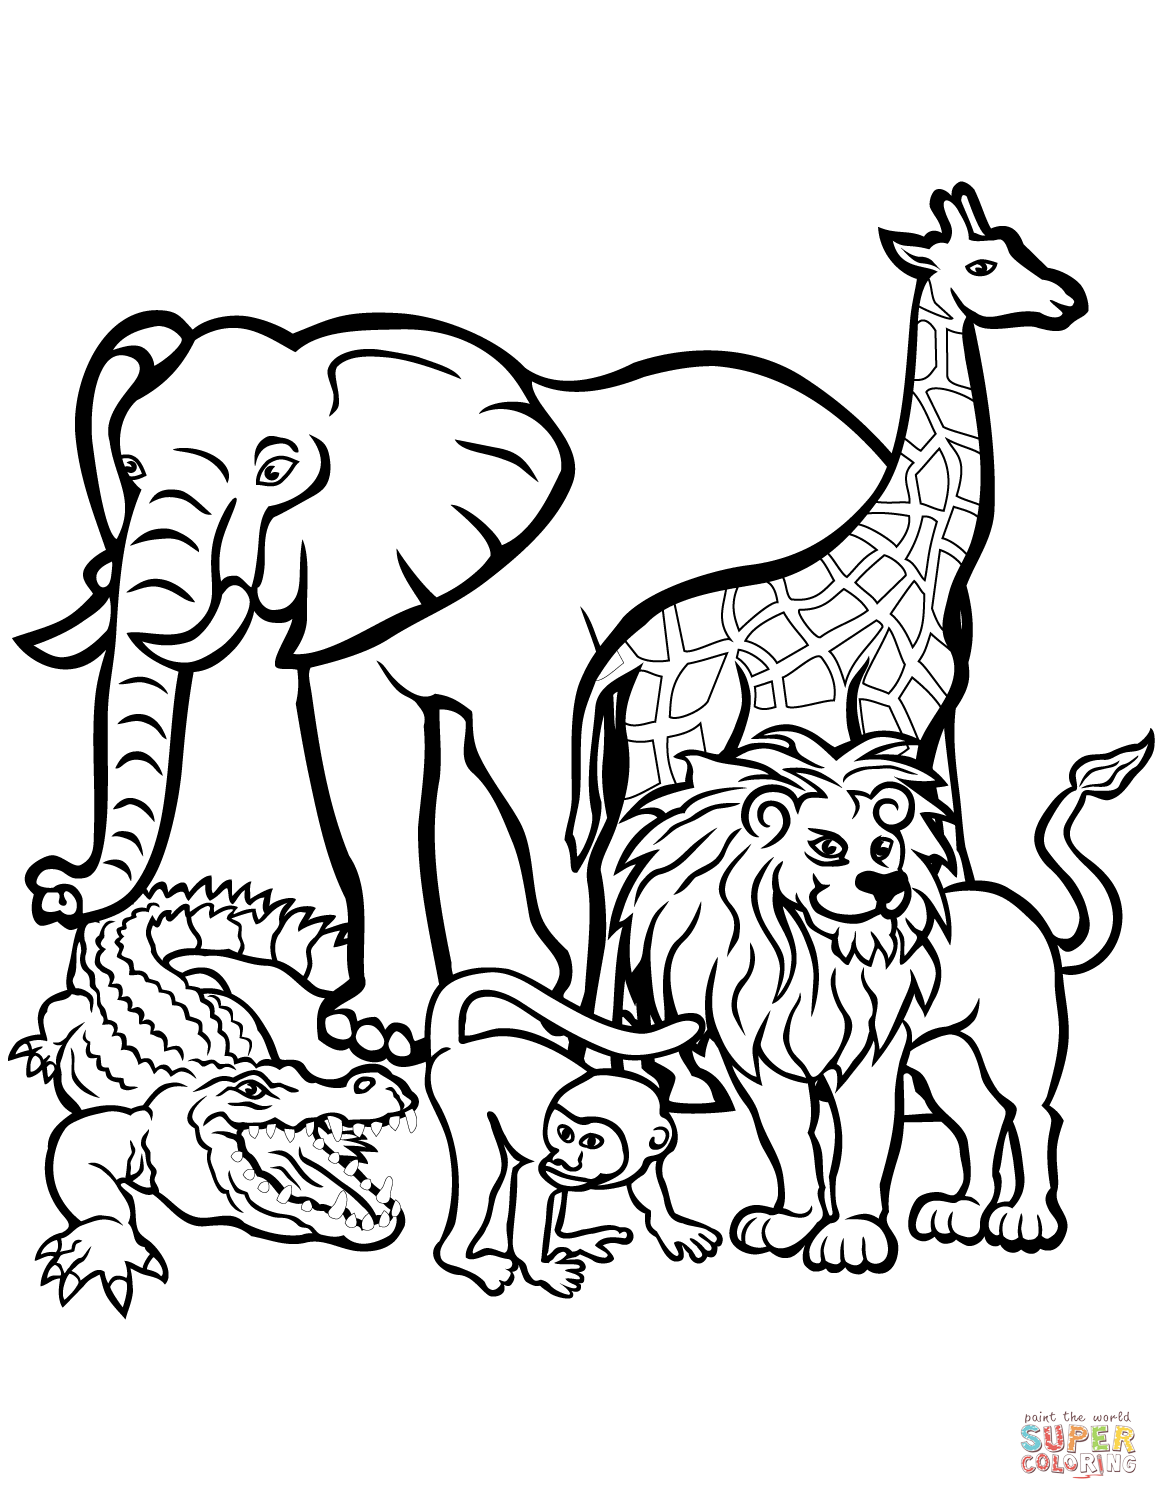 coloring pages of lion lion coloring pages free download on clipartmag lion pages coloring of